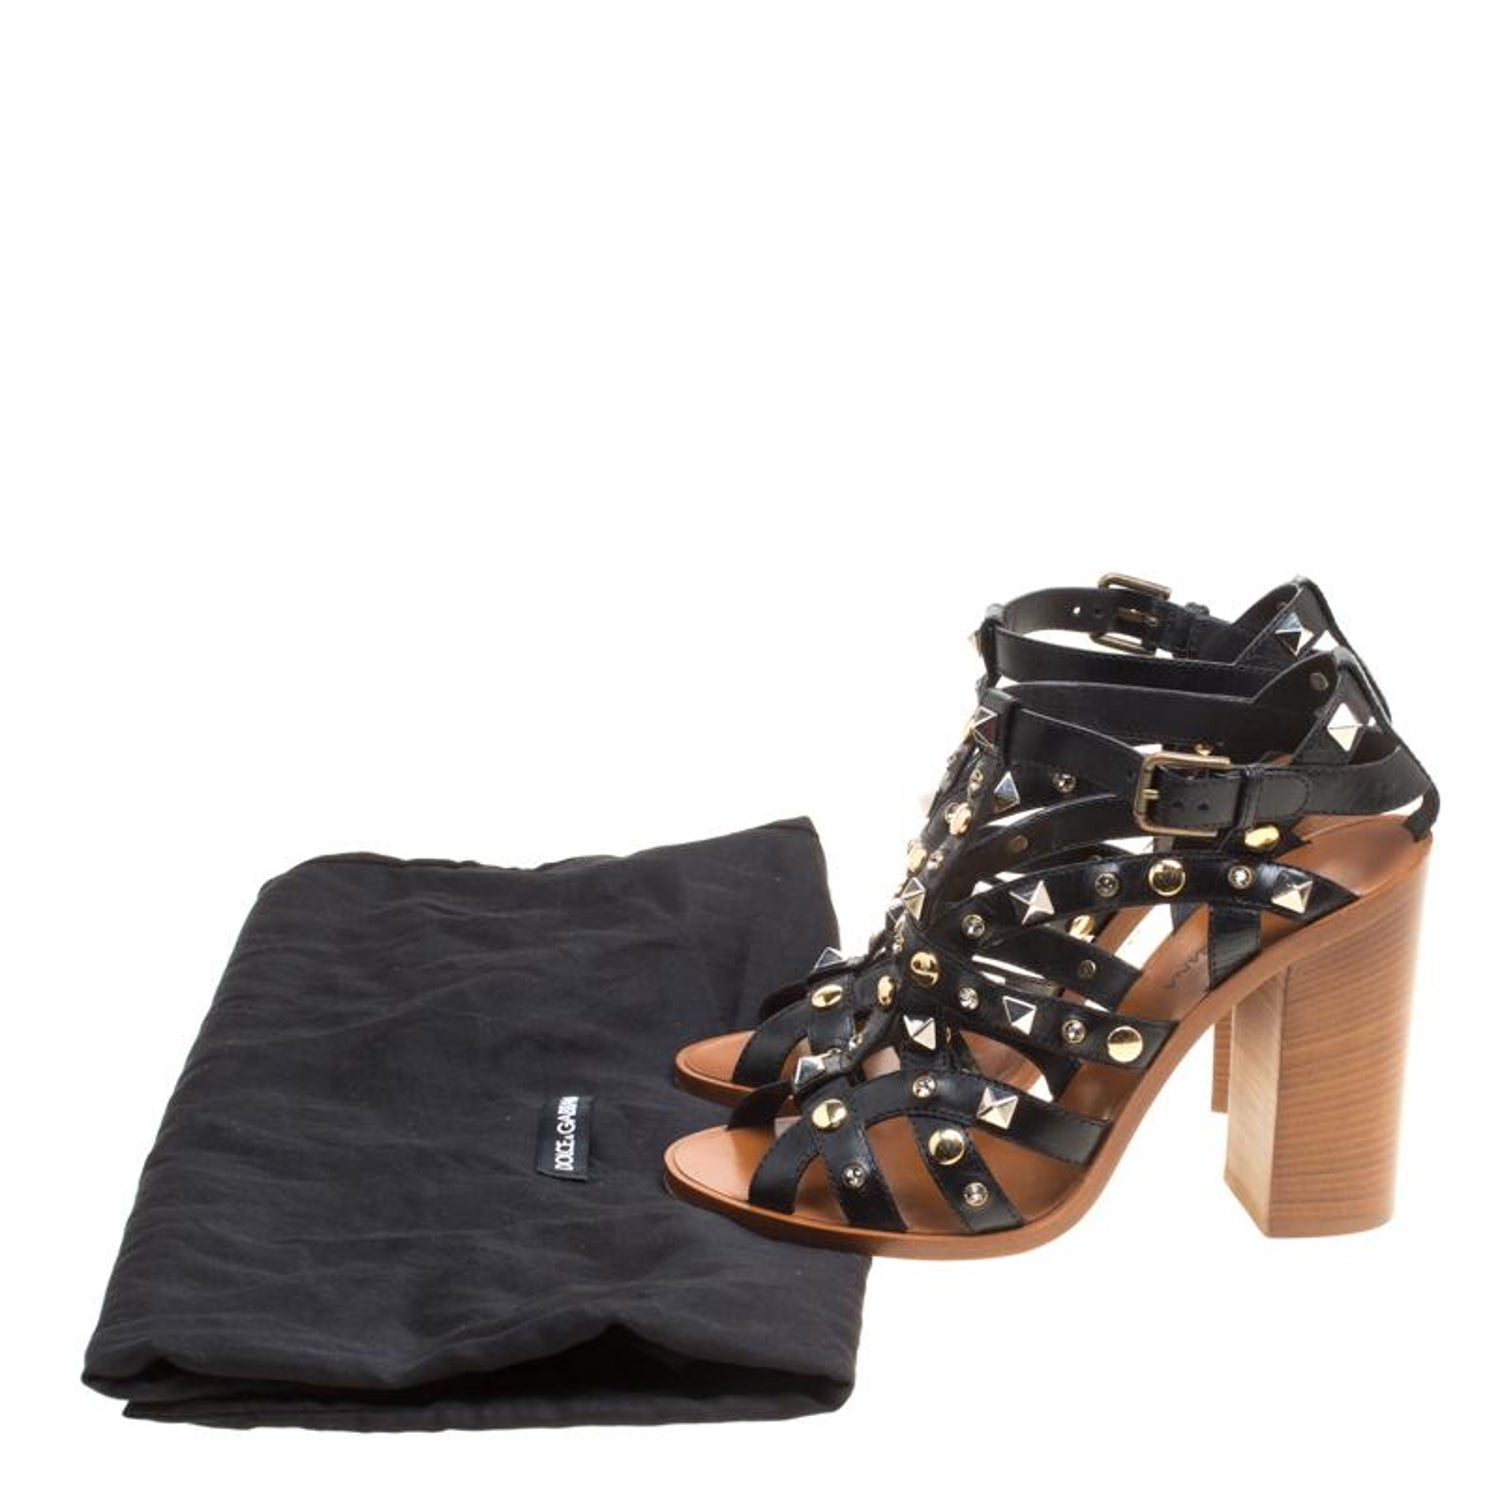 dfdb344a70e Dolce and Gabbana Black Studded Strappy Leather Block Heel Sandals Size 38  For Sale at 1stdibs